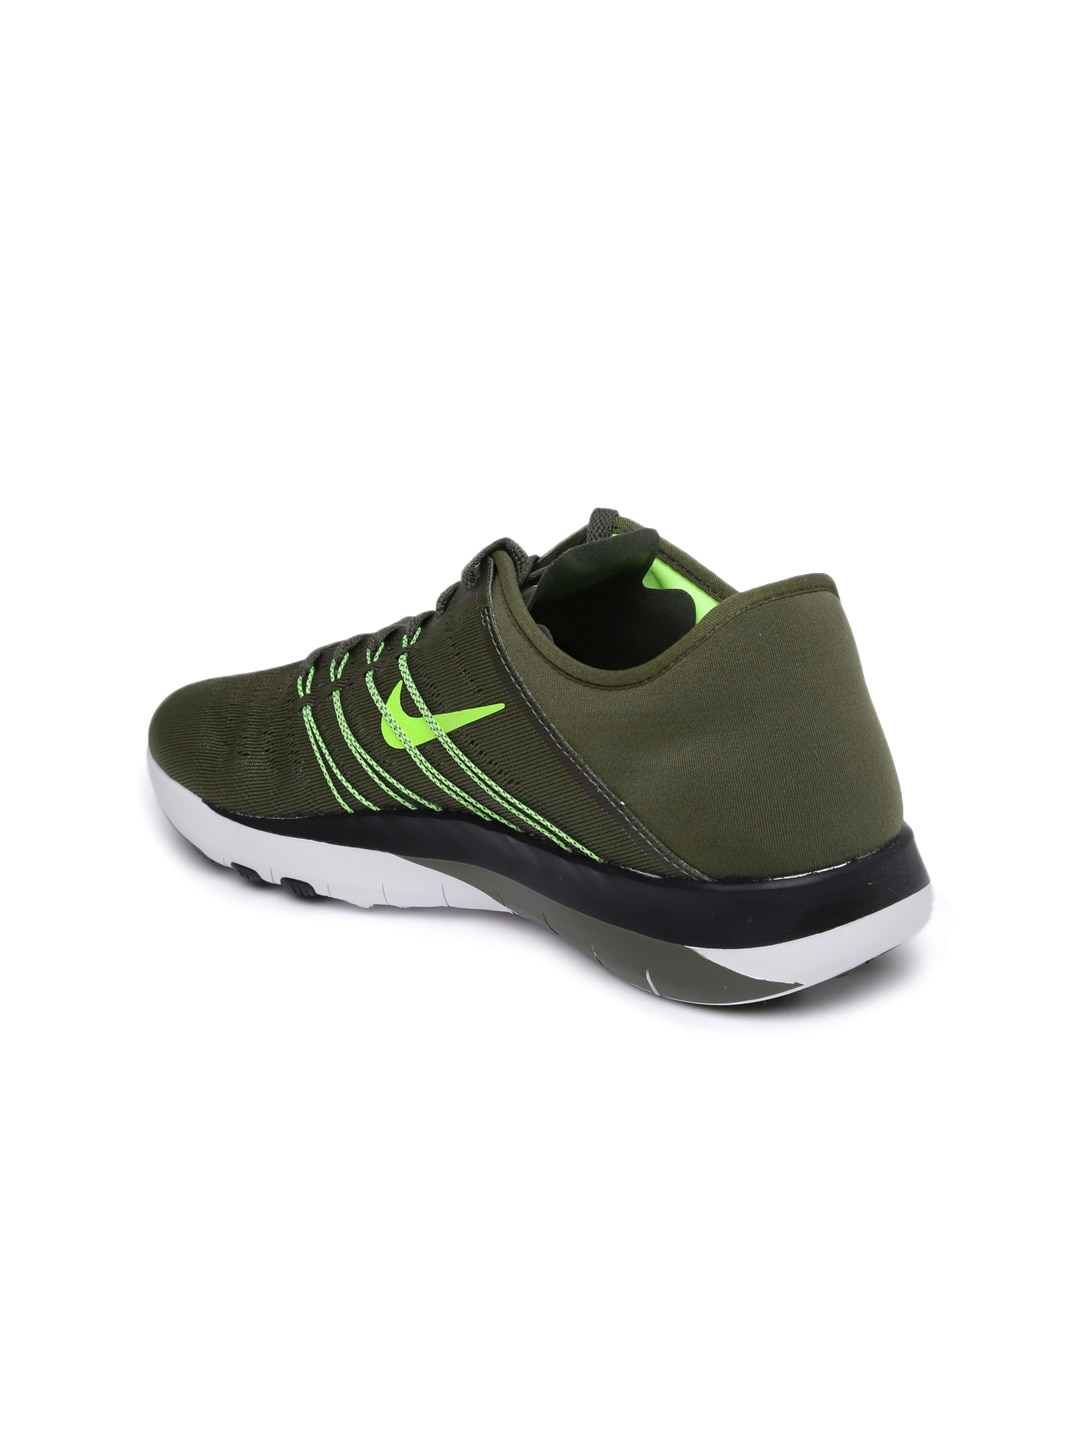 3d69c97f8d51 ... mens shoe c9c5f 5923b best womens nike shoes buy nike shoes for women  online in india 515dd 11ff3 ...